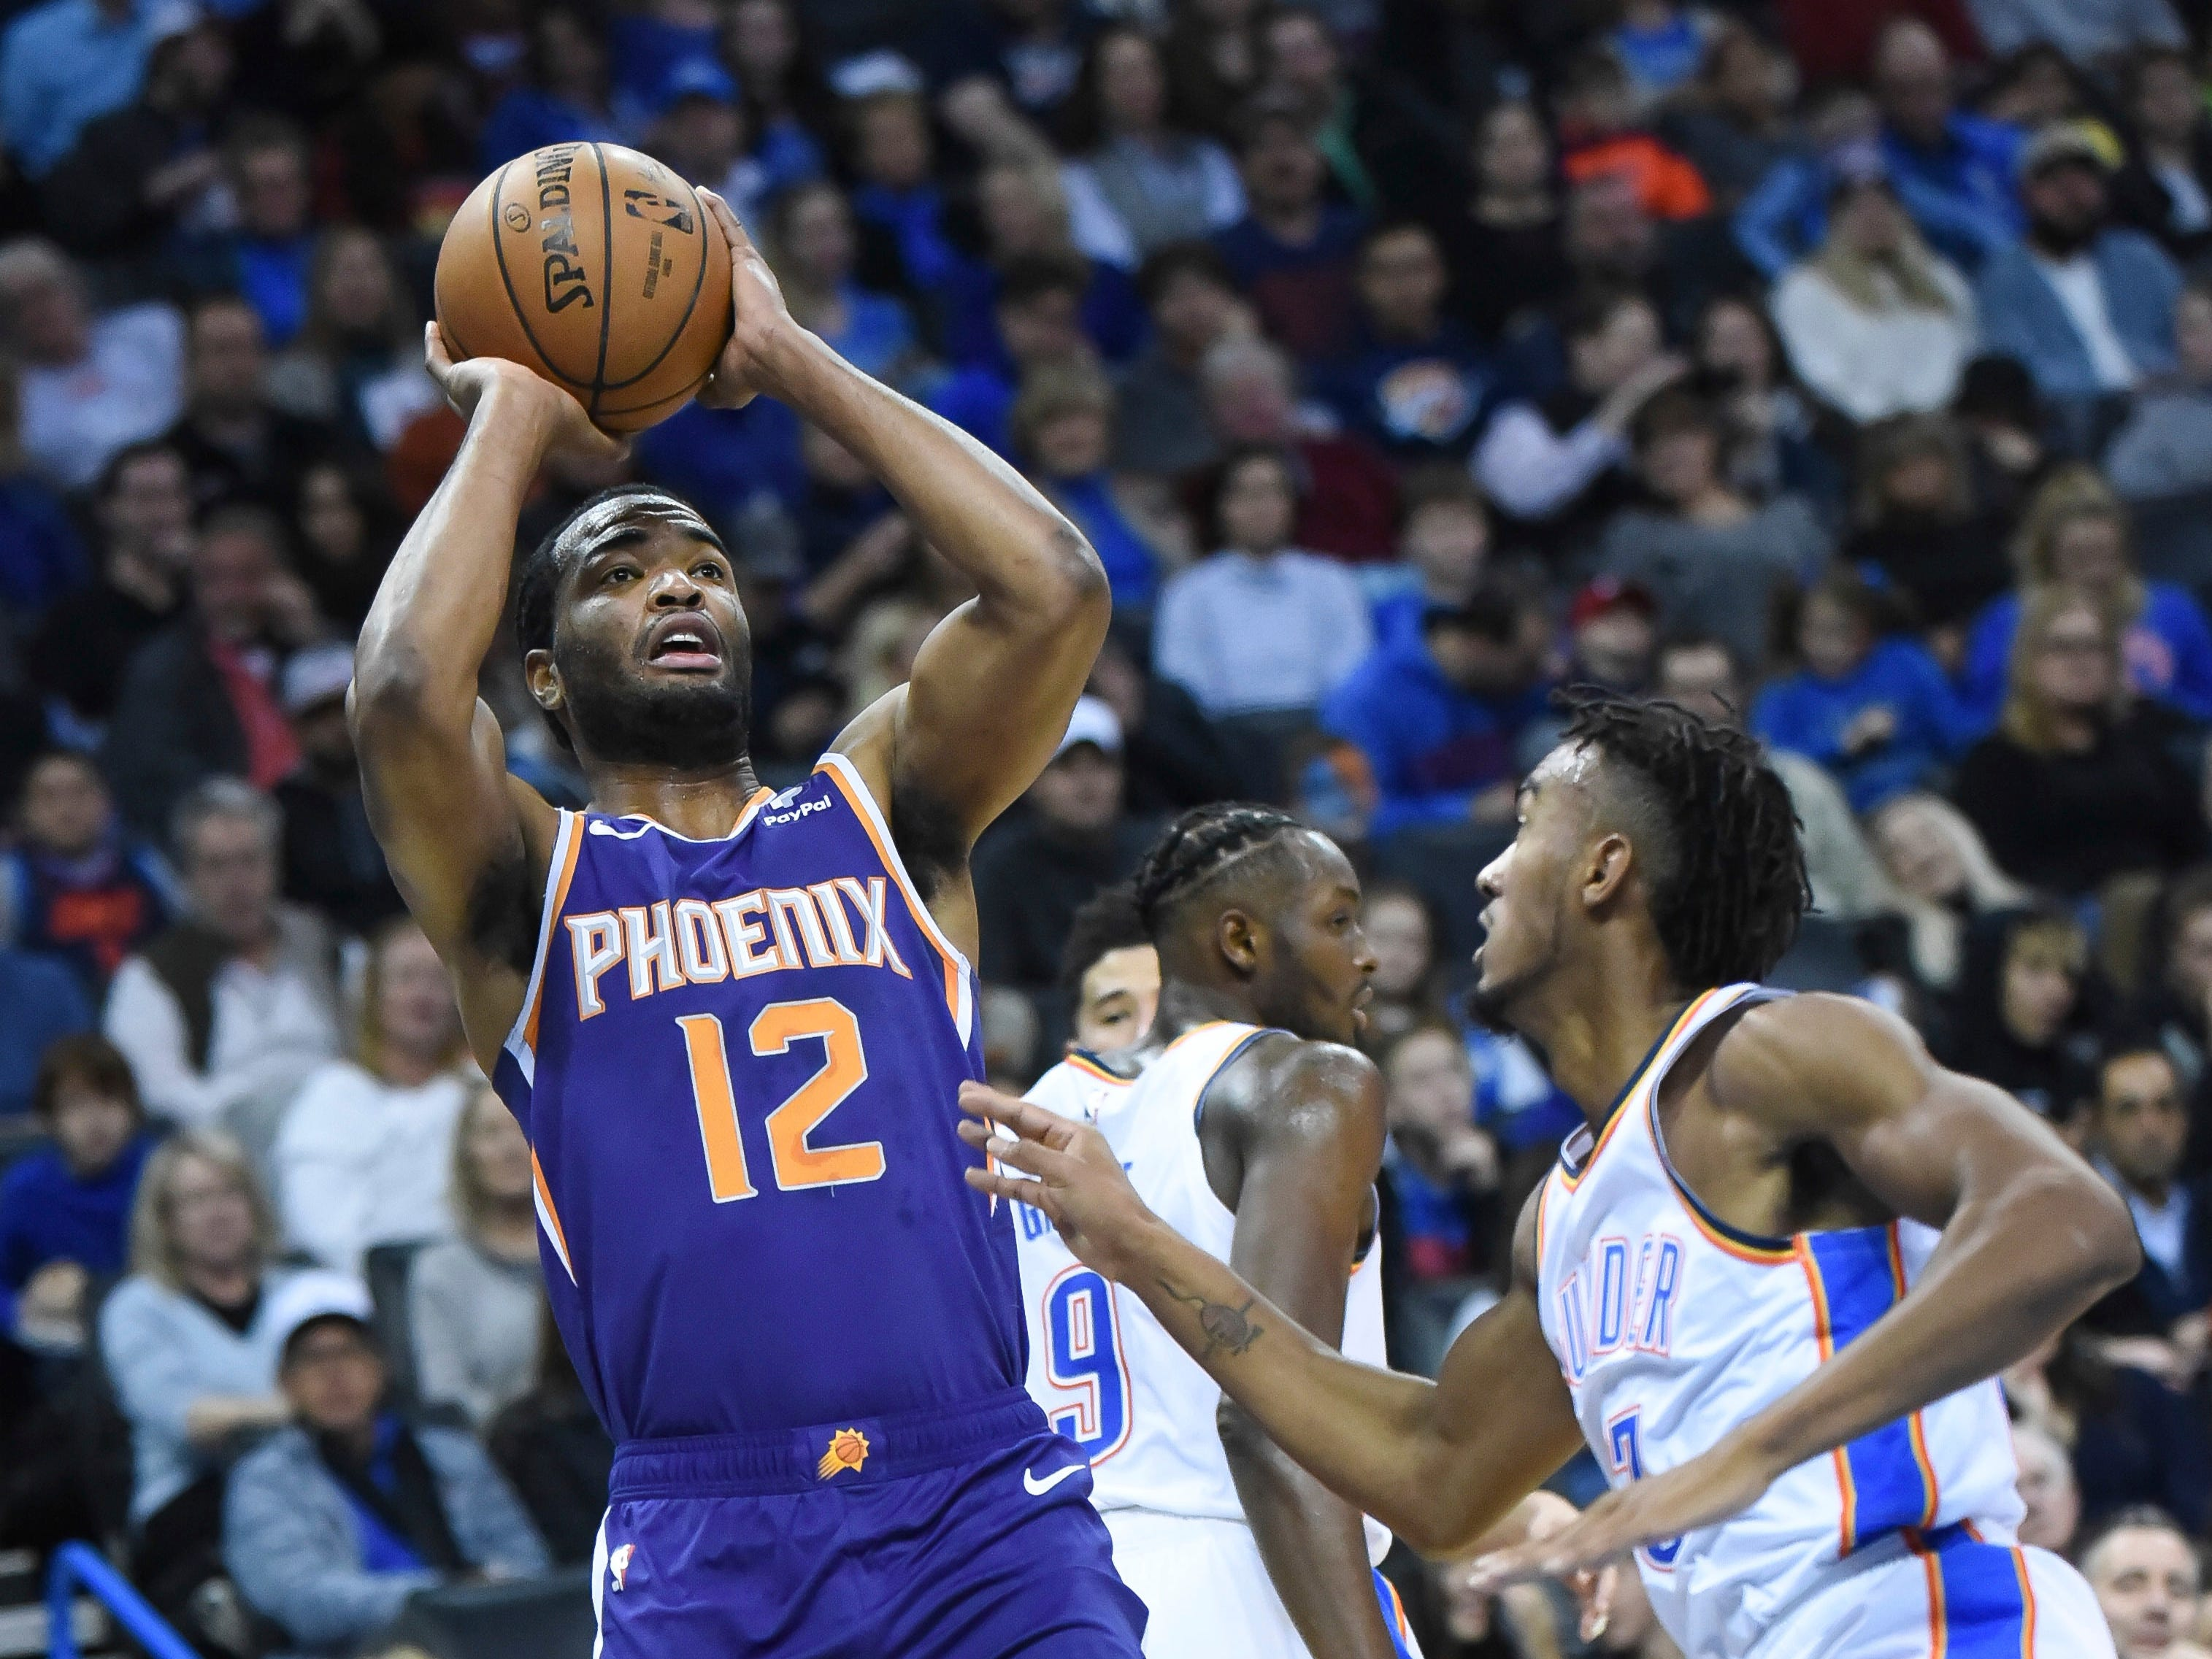 Phoenix Suns forward T.J. Warren (12) shoots the ball over Oklahoma City Thunder center Nerlens Noel (3) in the first half of an NBA basketball game in Oklahoma City, Monday, Nov. 12, 2018. (AP Photo/Kyle Phillips)